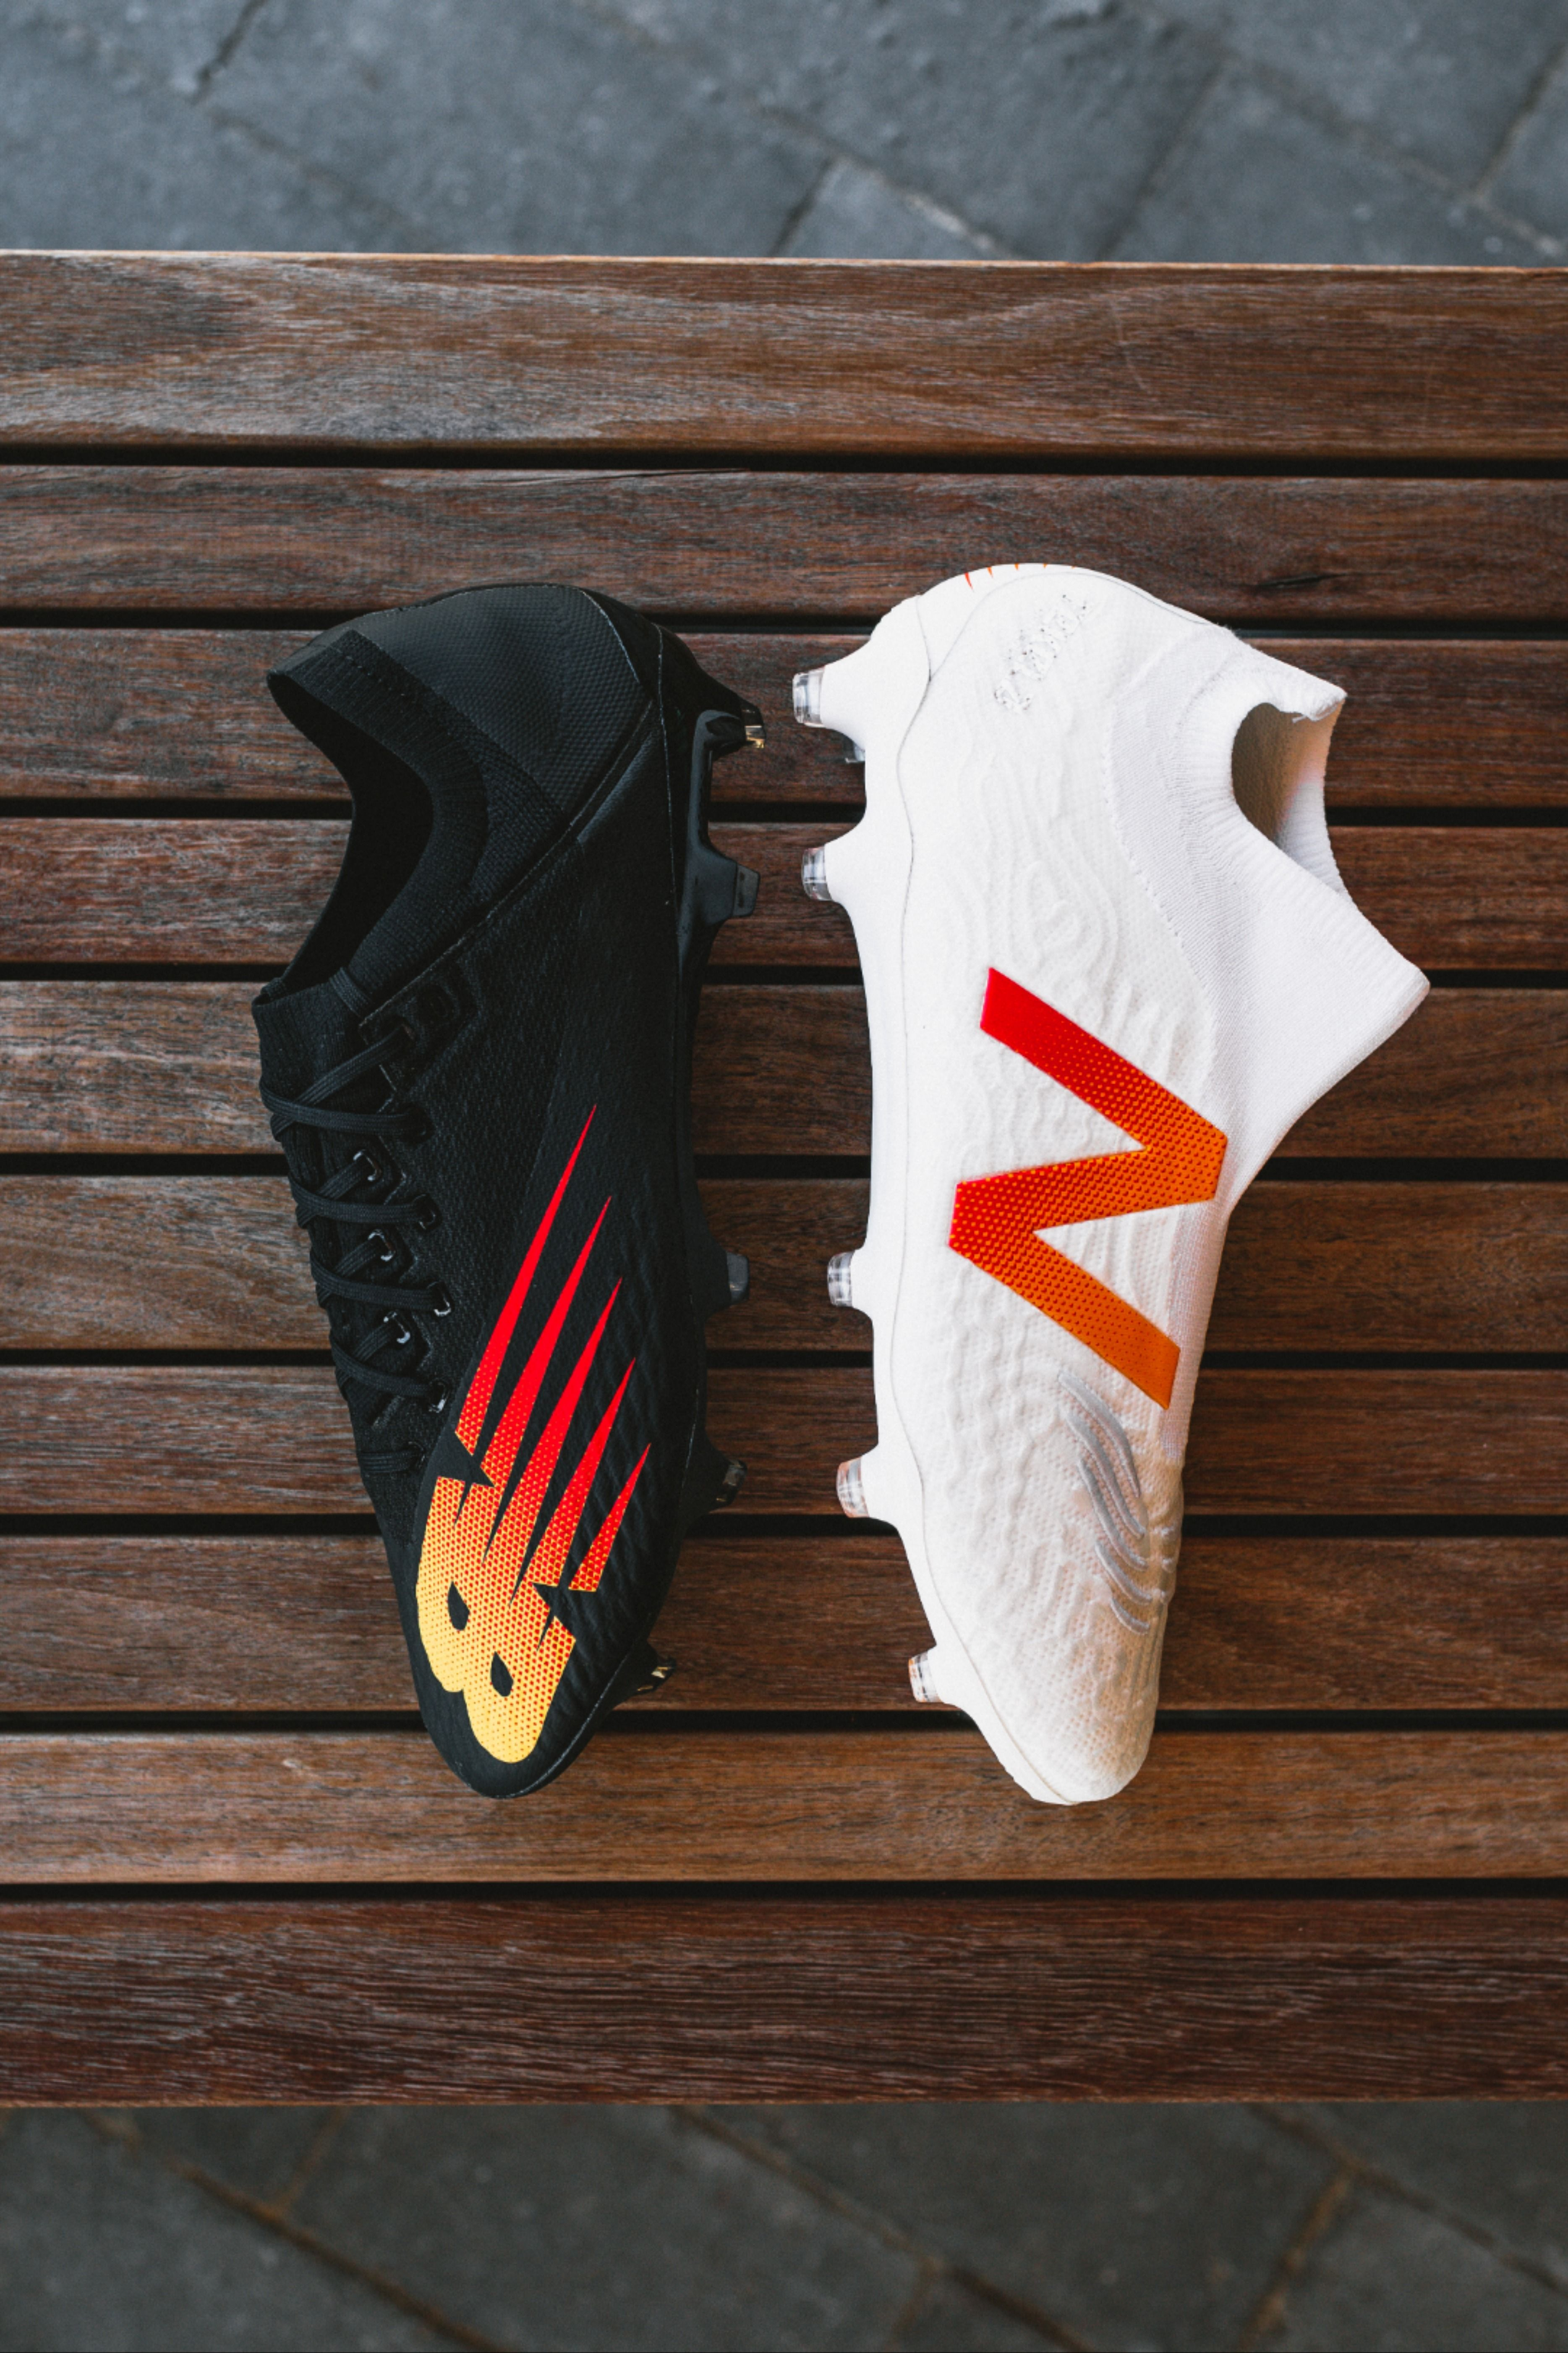 New Balance Rise Reign Pack Tekela V3 Furon V6 Soccer Cleats Football Boots In 2020 Football Boots Soccer Cleats Pure Products